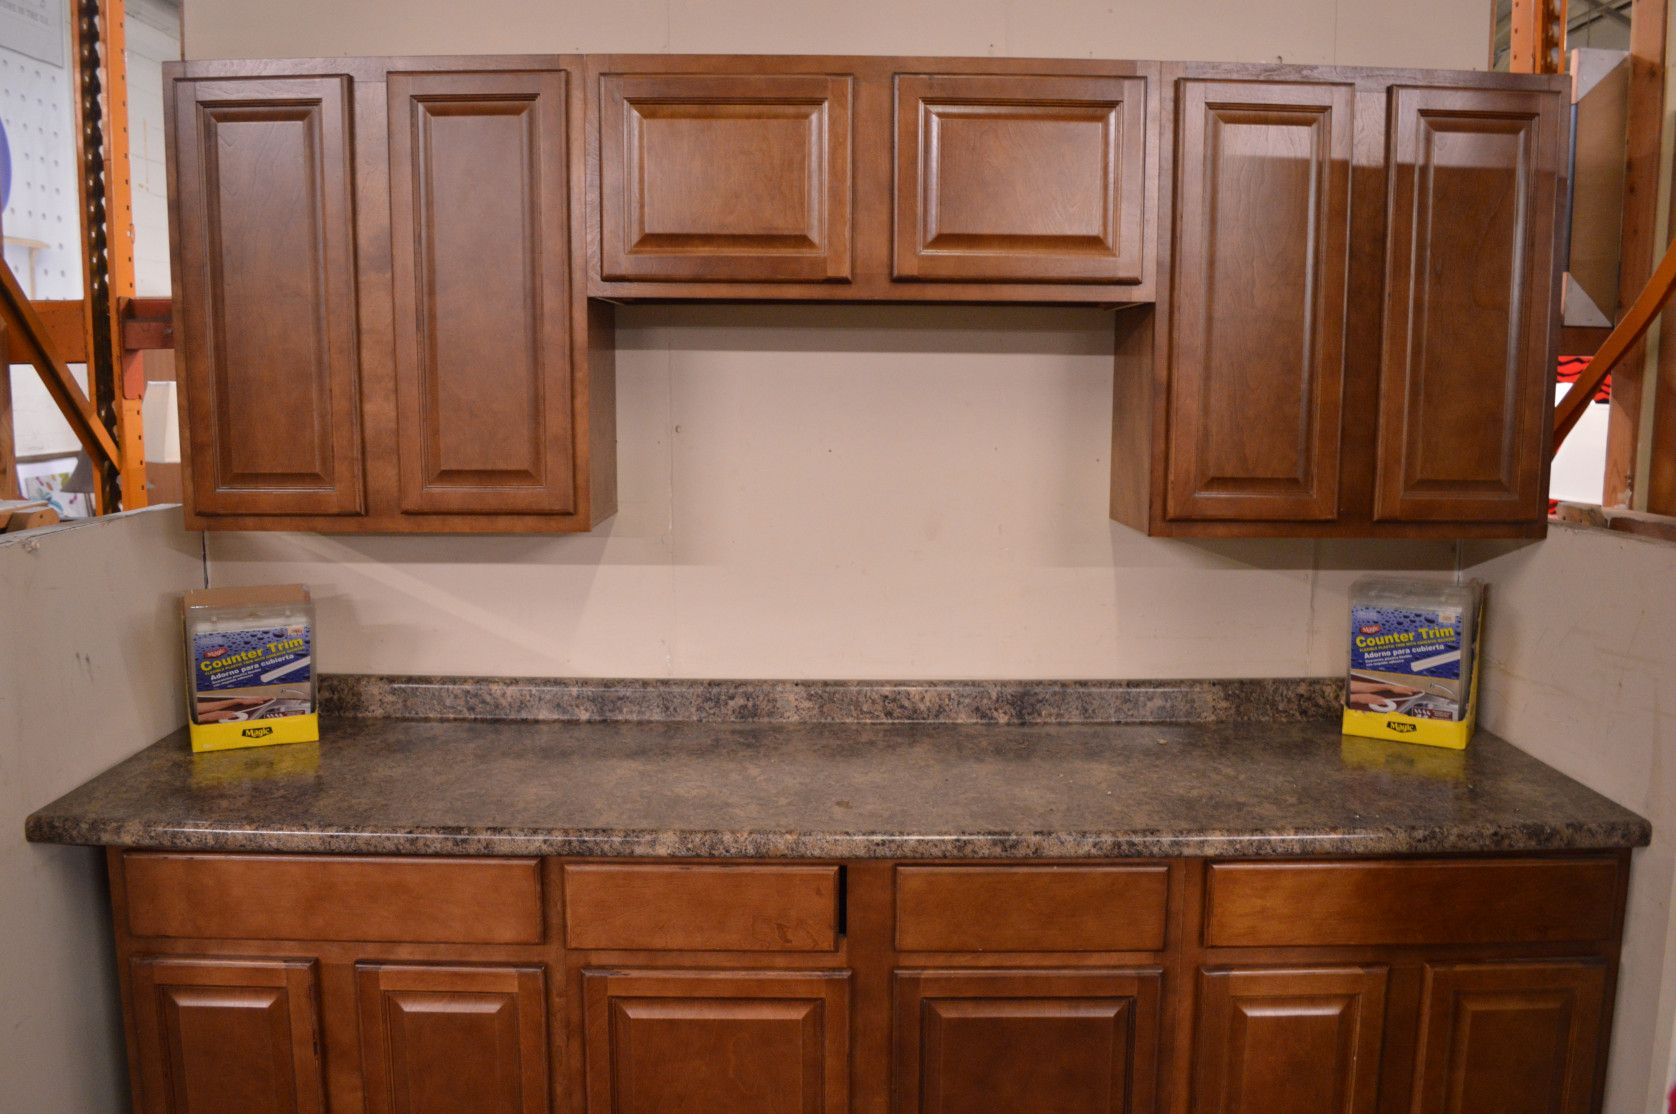 55 Used Kitchen Cabinets For Sale Near Me Kitchen Cabinet Inserts Ideas Check More At H Cheap Kitchen Cabinets Kitchen Cabinets Inexpensive Kitchen Cabinets